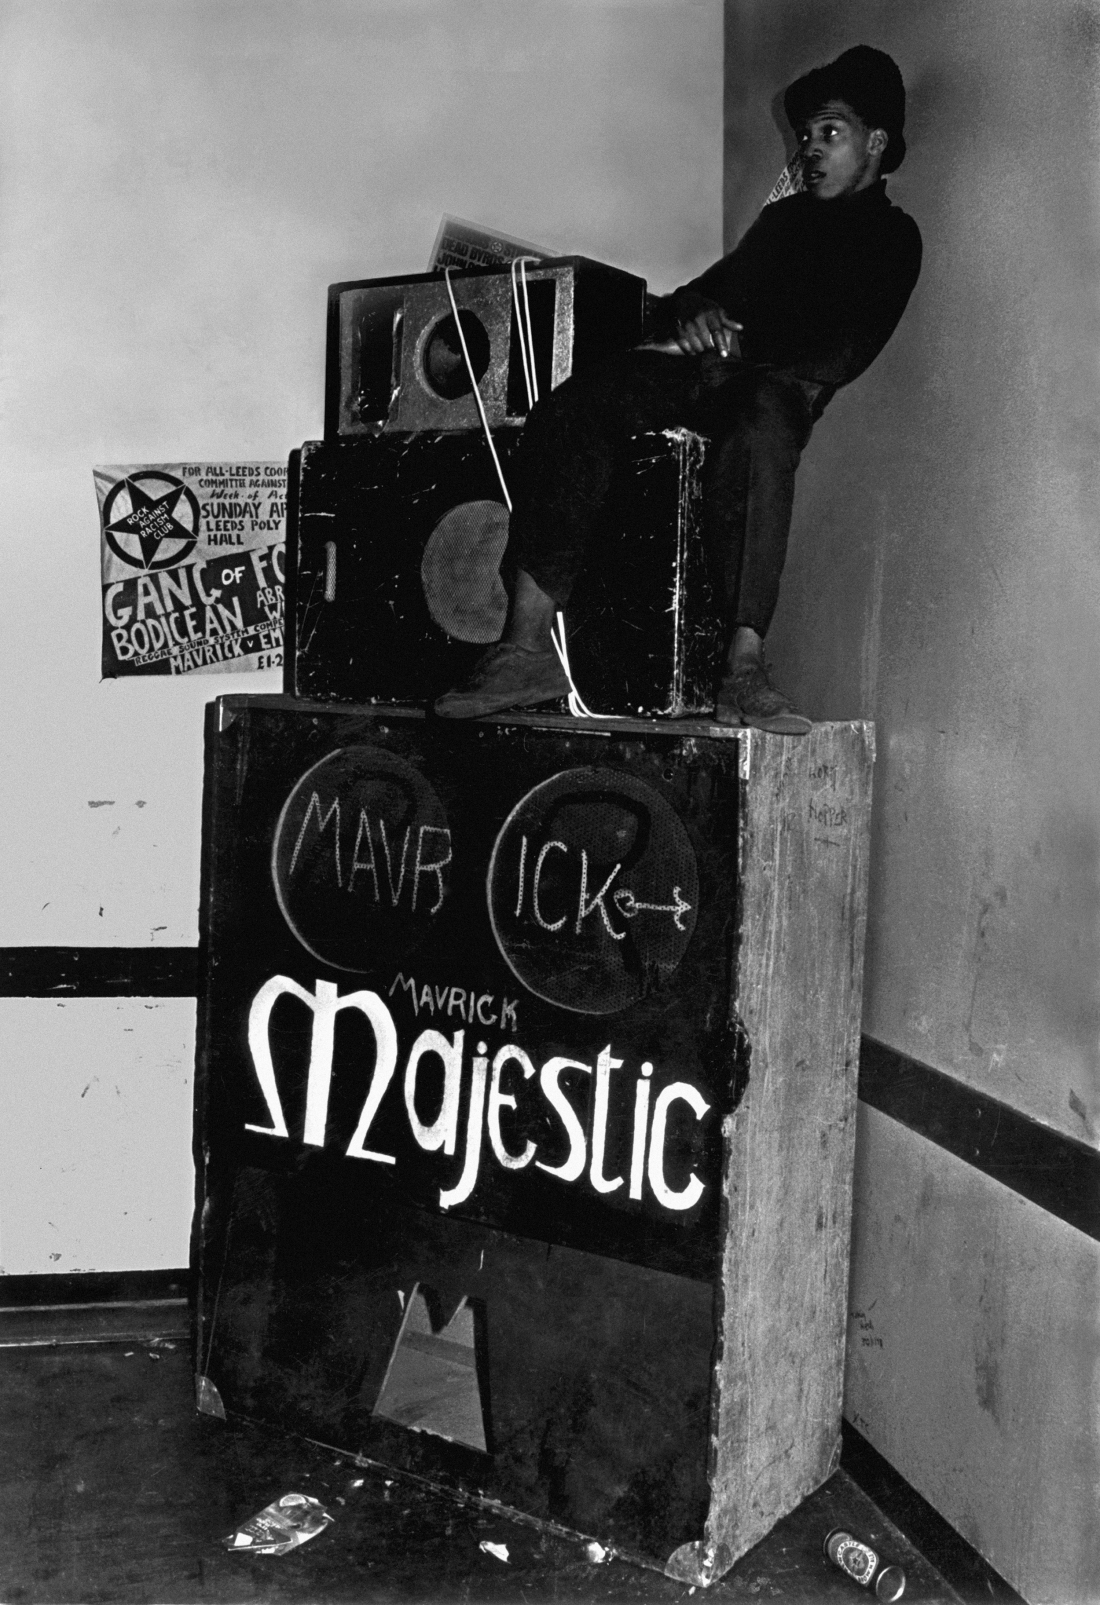 Skully Roots (Jeff Walwyn), Majestic Sounds, Militant Entertainment Tour, Leeds 1979